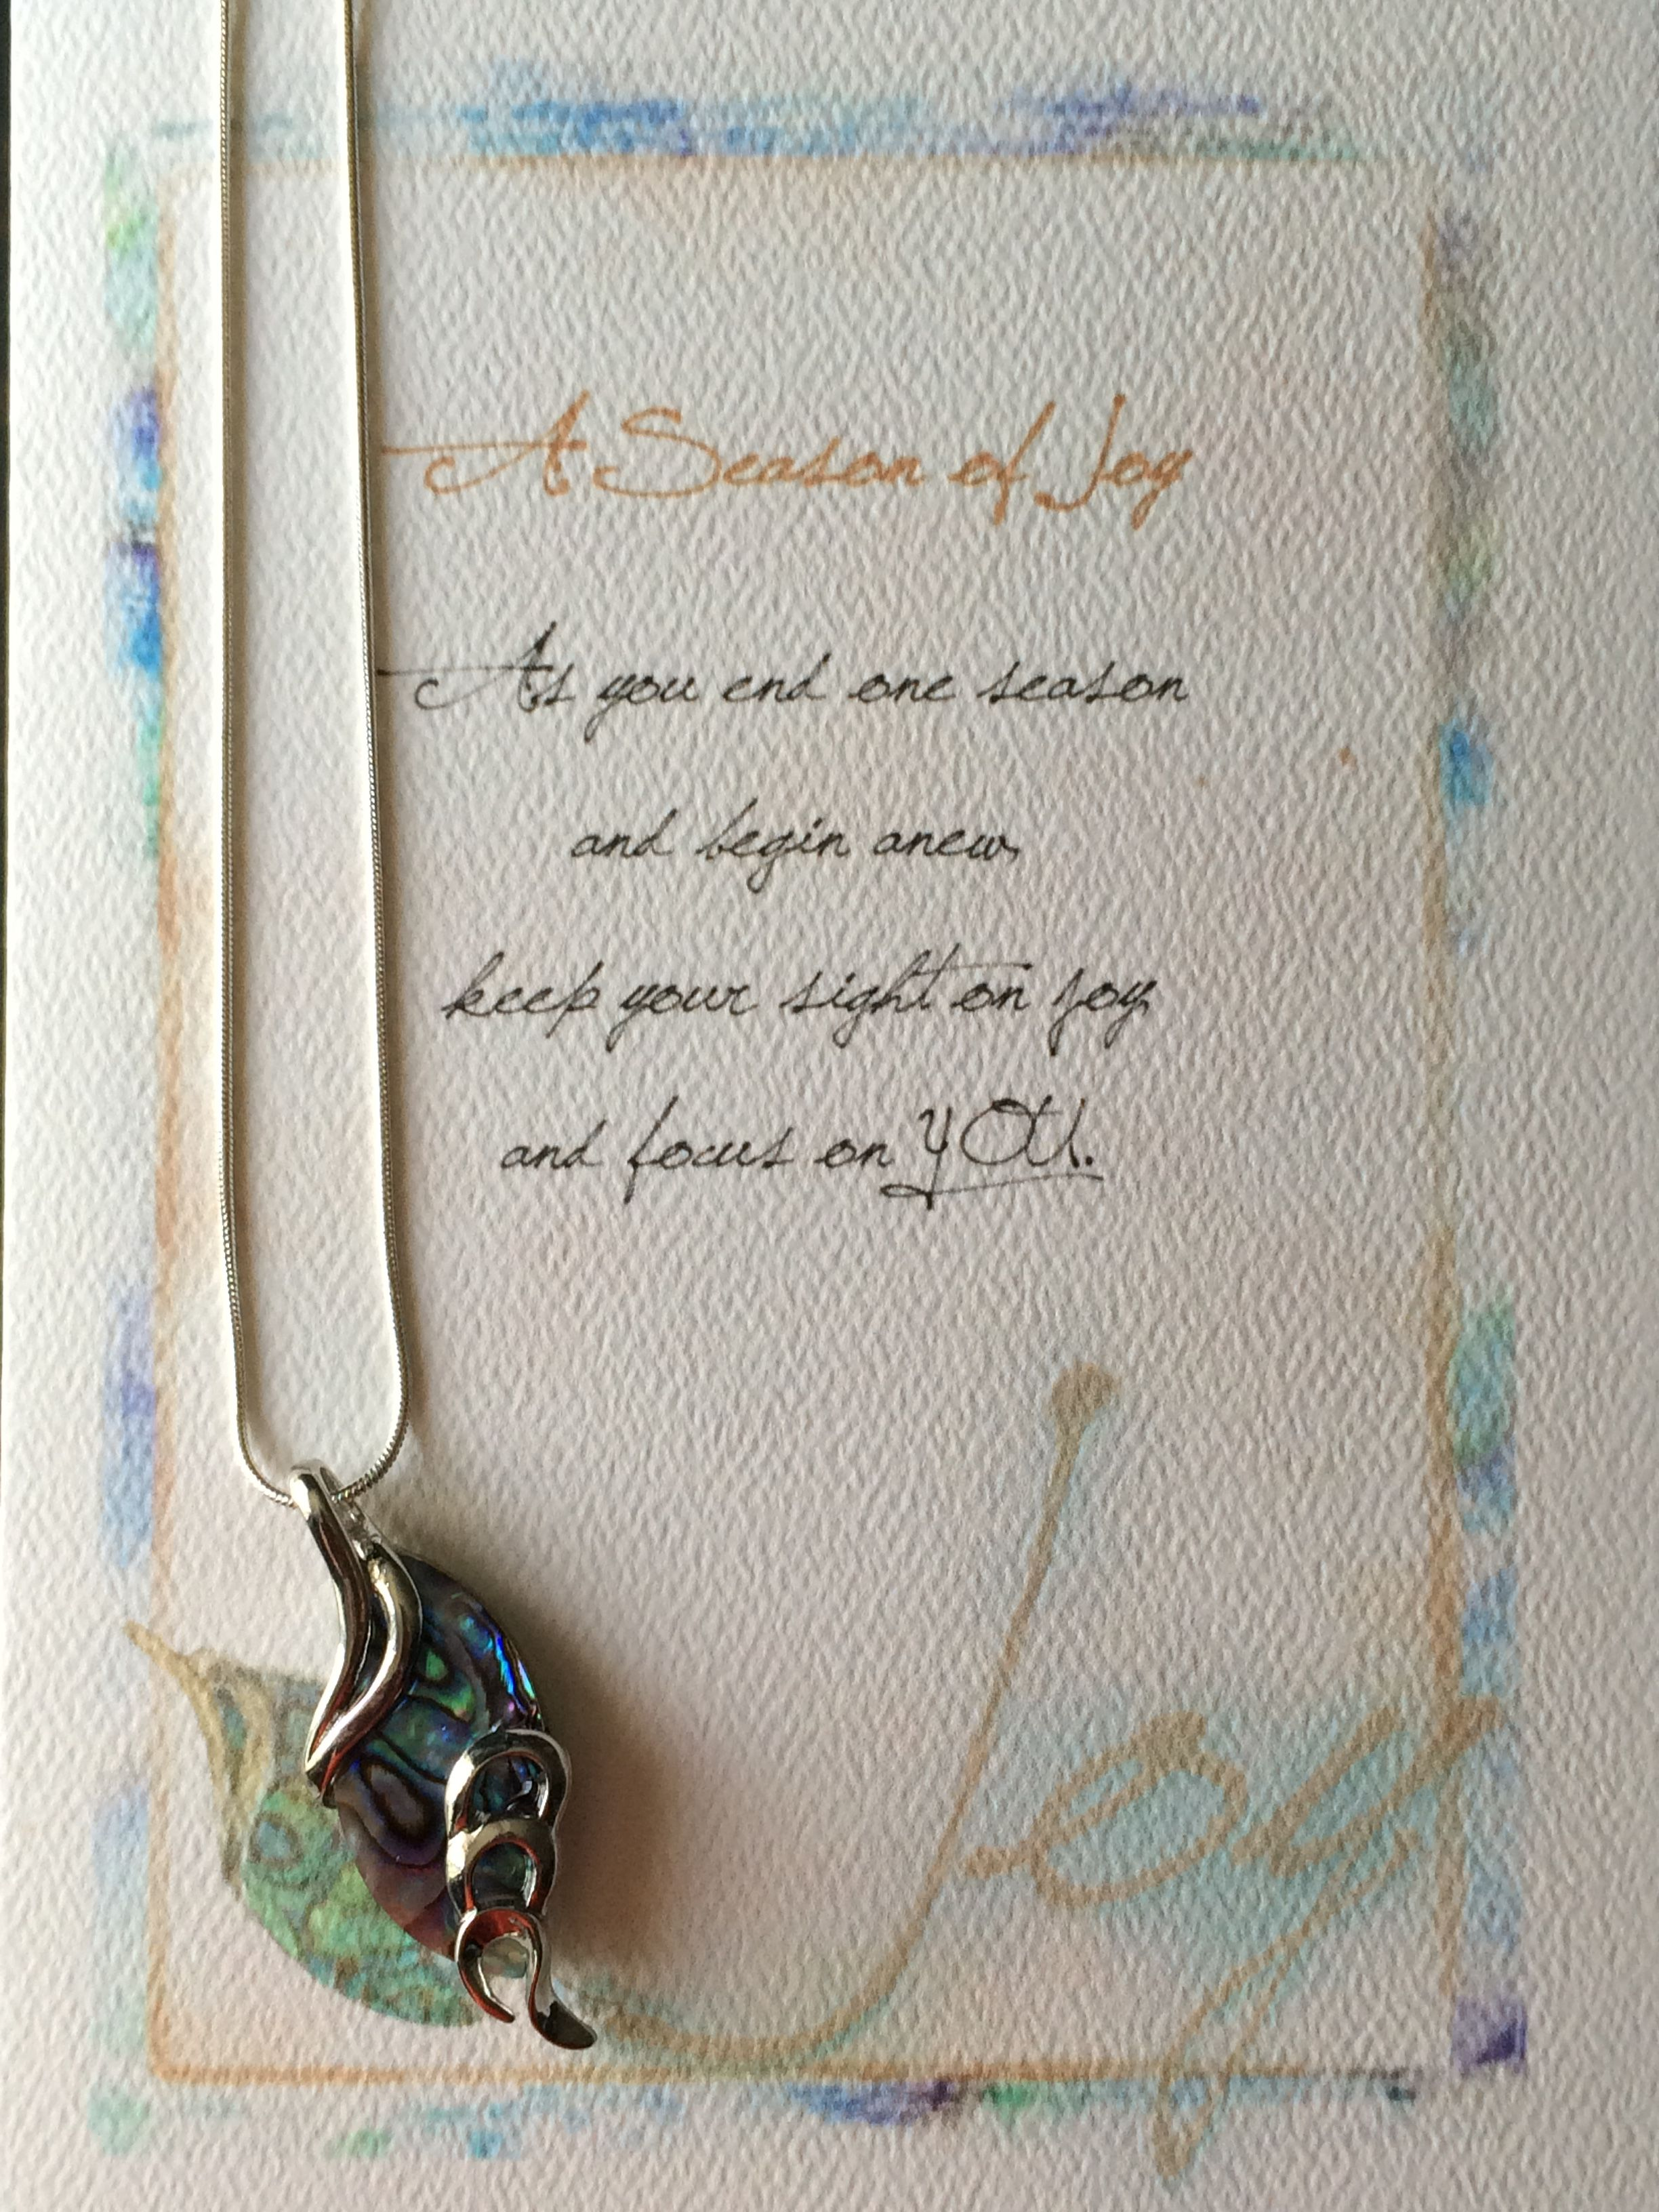 The greeting card reads a season of joy as you end one season the greeting card reads a season of joy as you end one season kristyandbryce Image collections